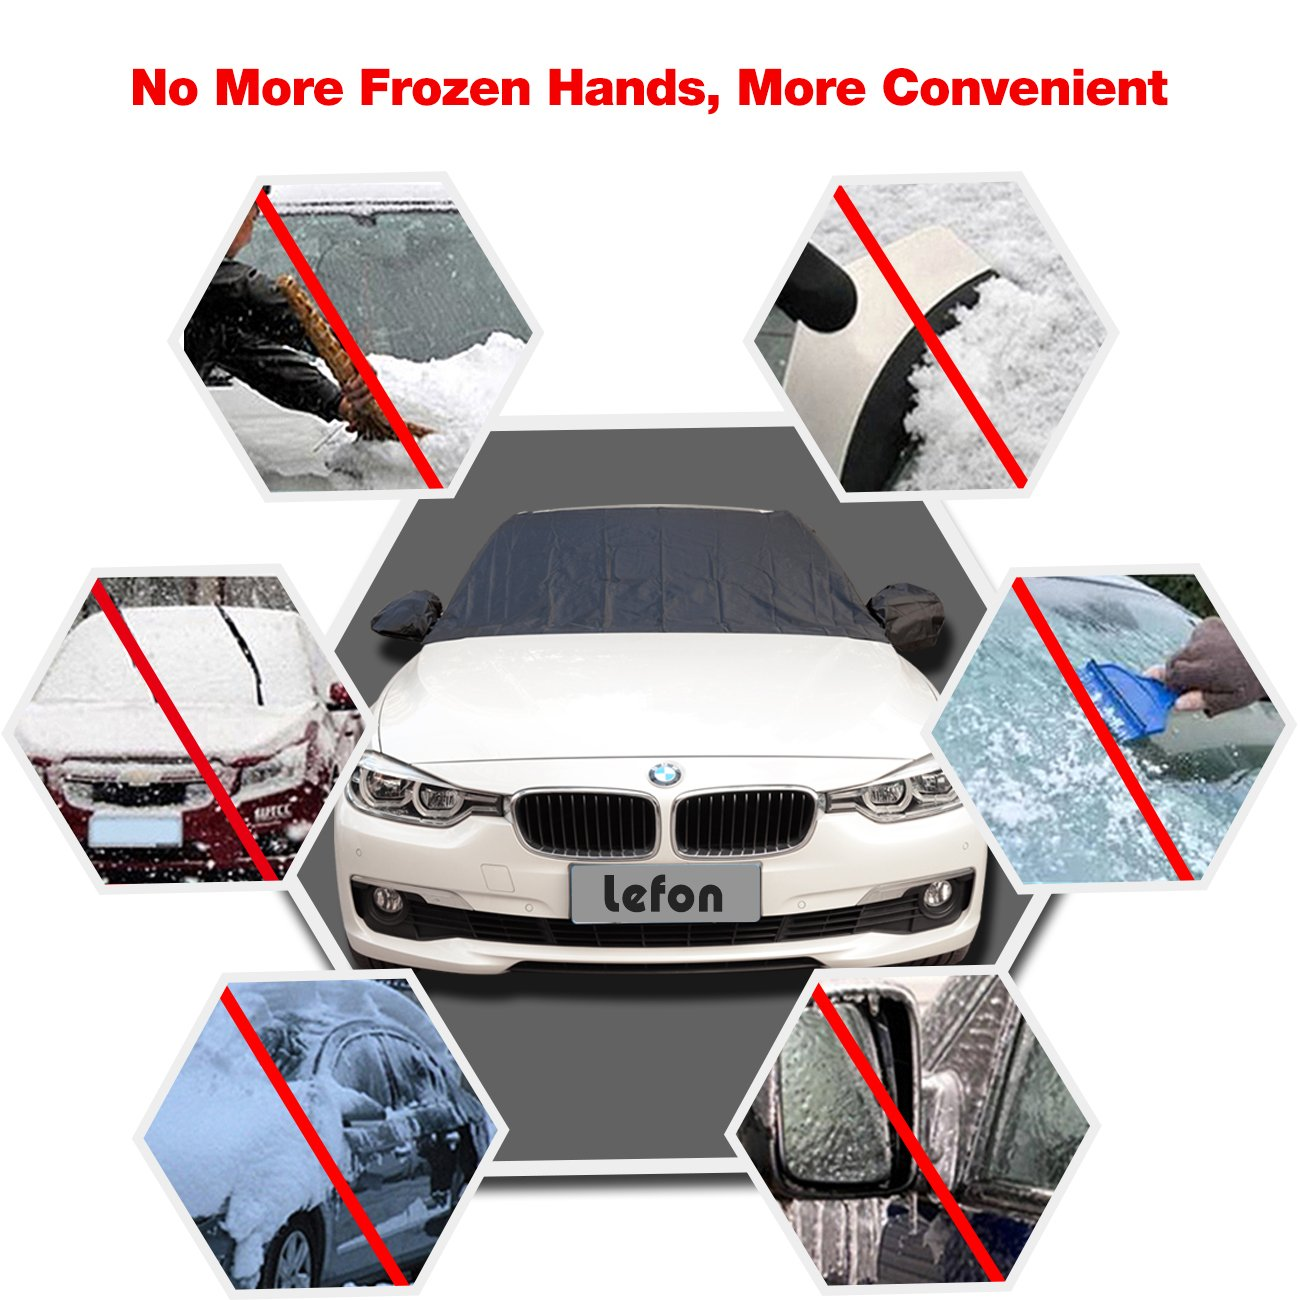 Lefon Windshield Snow Cover Magnetic Car Snow Cover Mirror Covers Automobiles 84.6x49.2 84.6x49.2 Design Protects Windshield Wipers from Snow Ice Frost Build Up Ice Frost Build Up